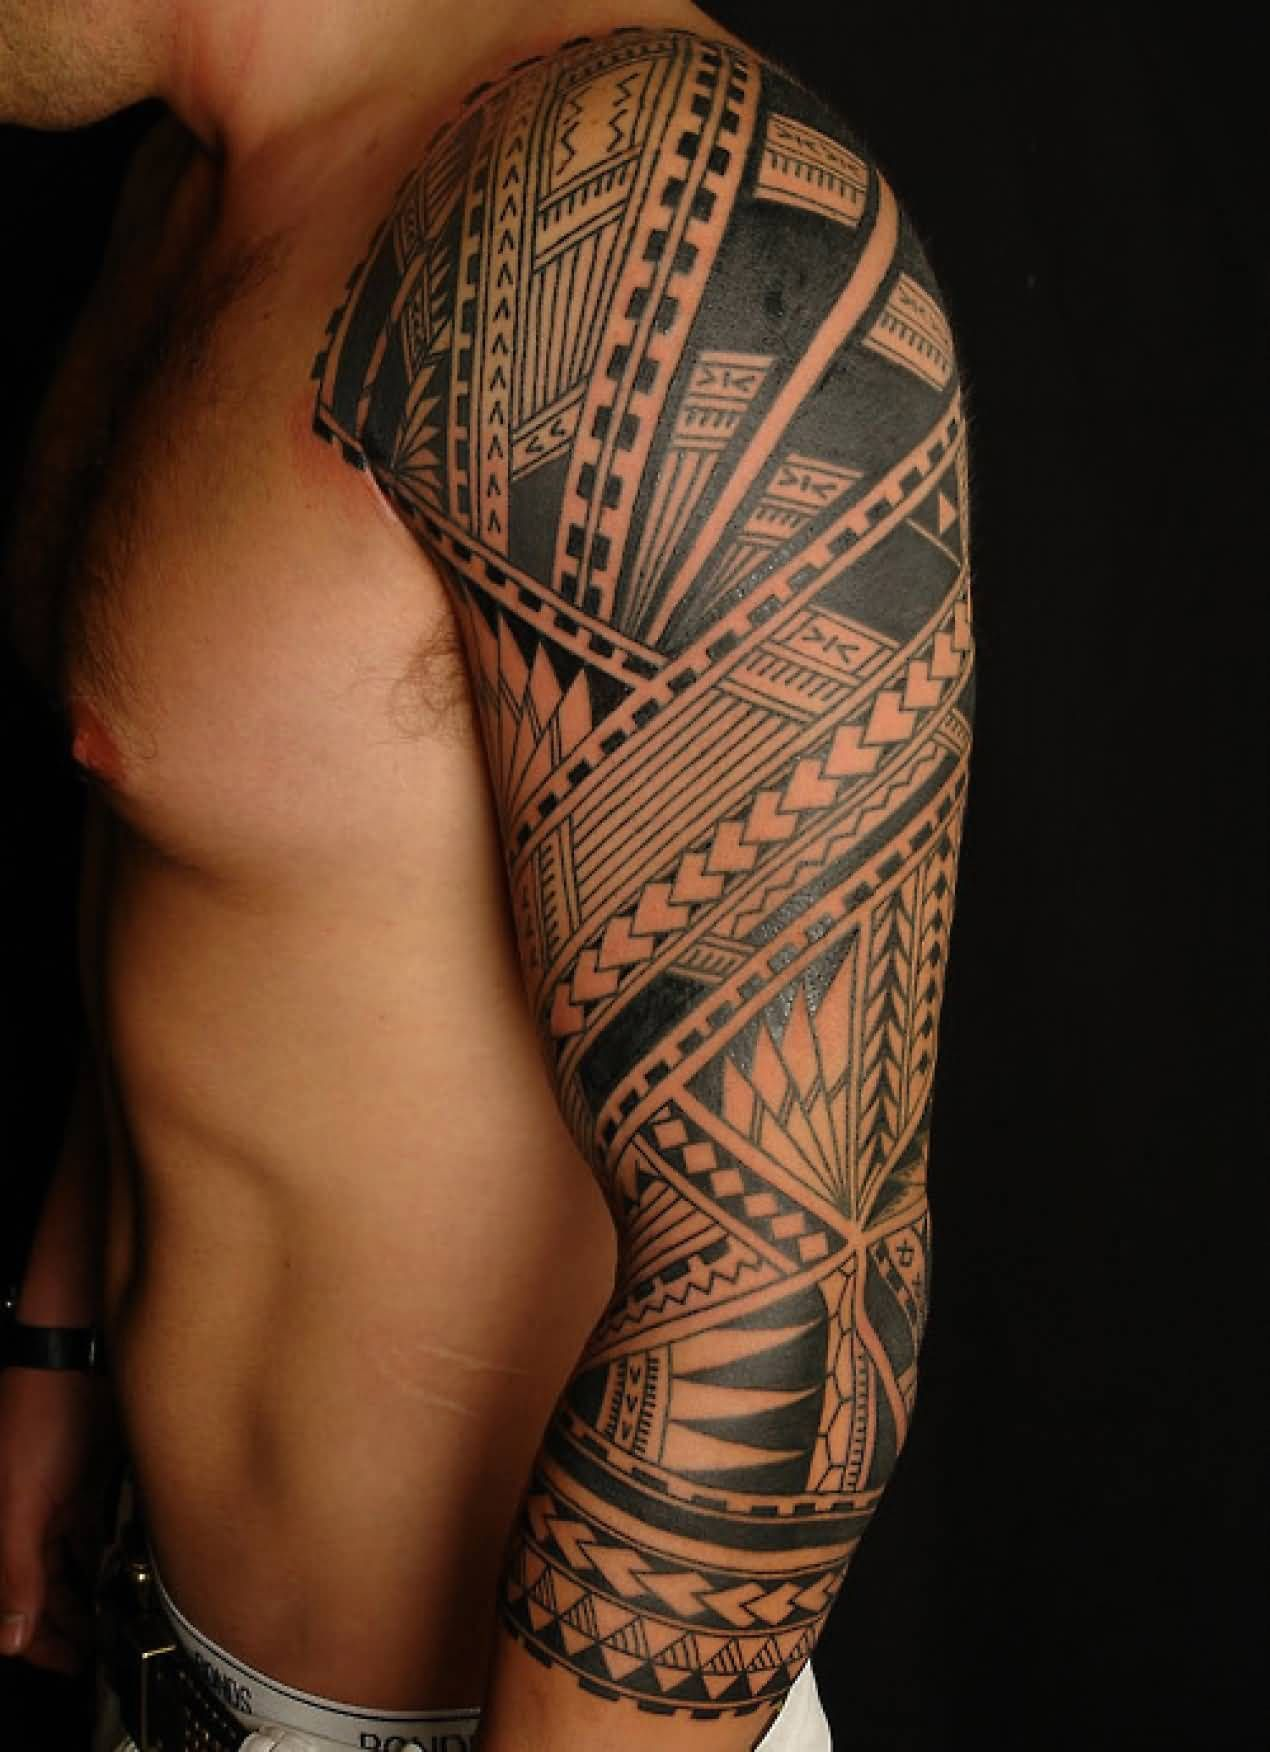 Impressive Tribal Maori Tattoo On Full Sleeve Tribal Tattoos For Men Mens Shoulder Tattoo Tattoo Sleeve Designs